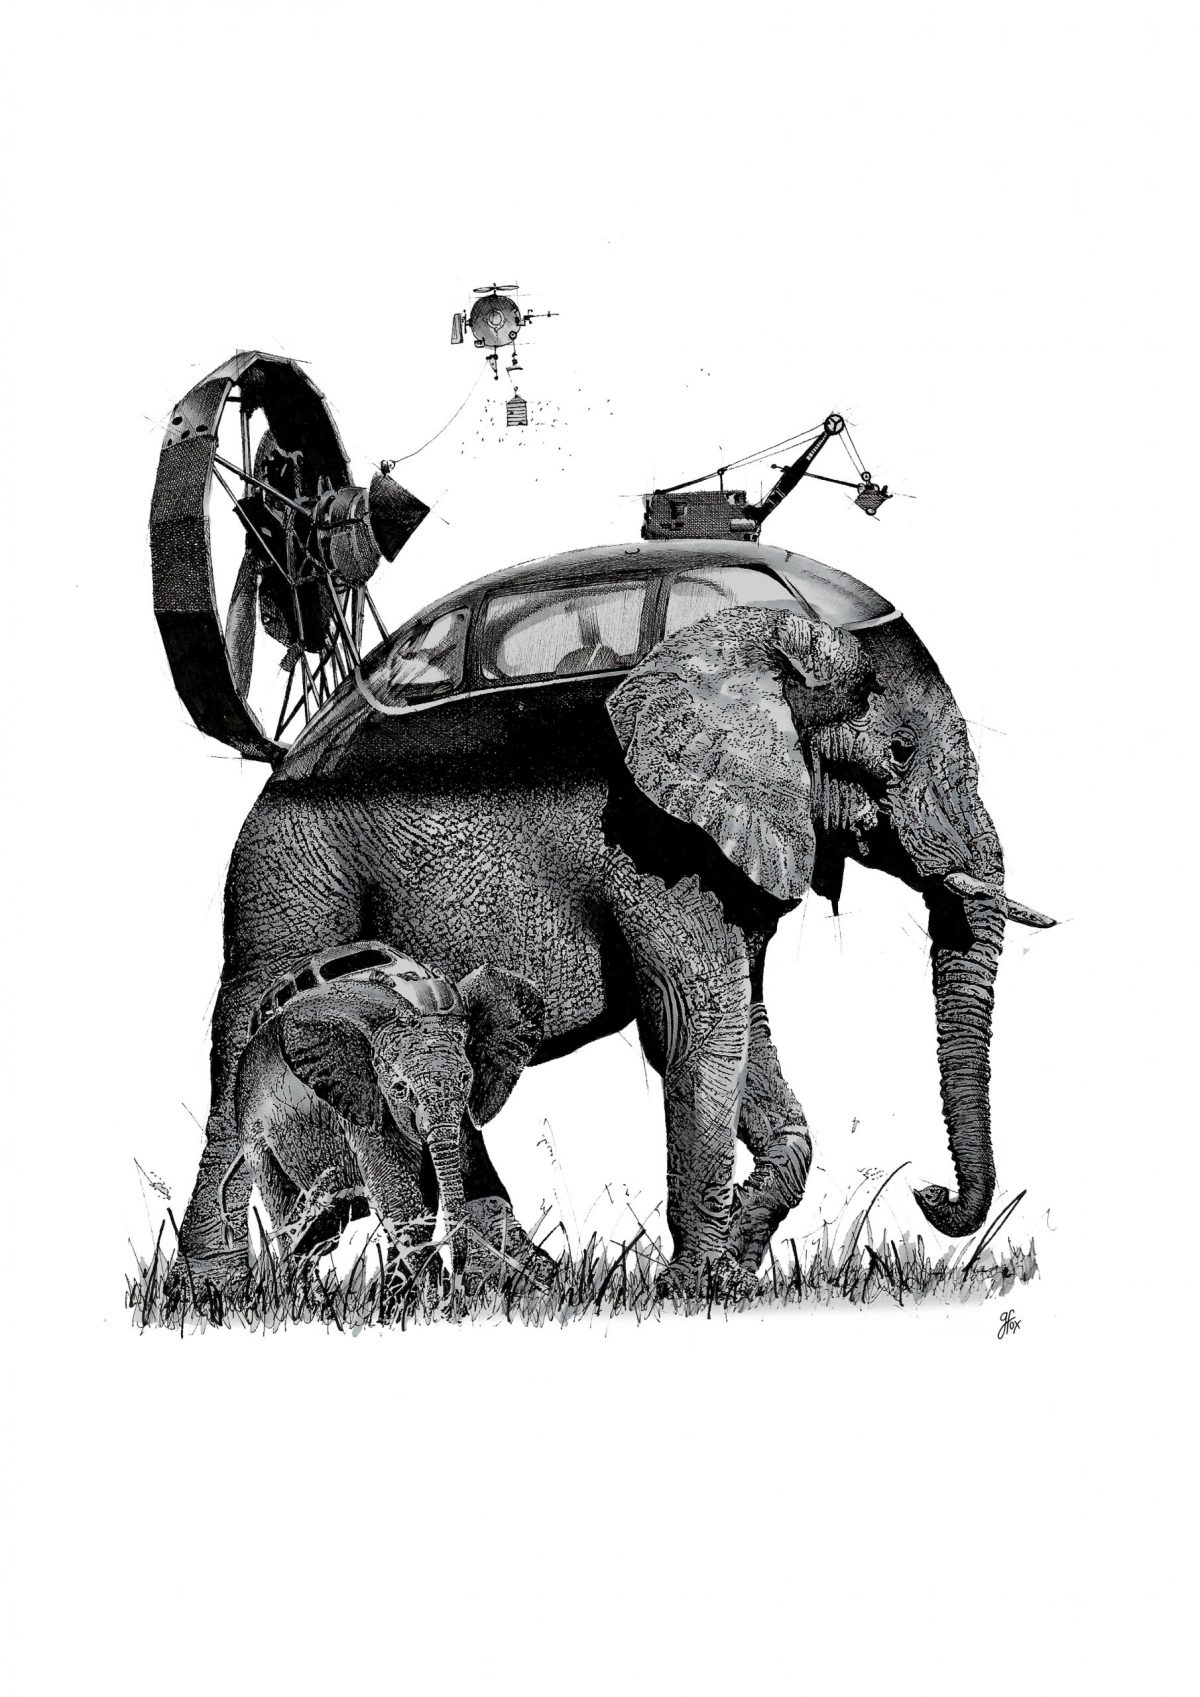 An ink illustration of an elephant